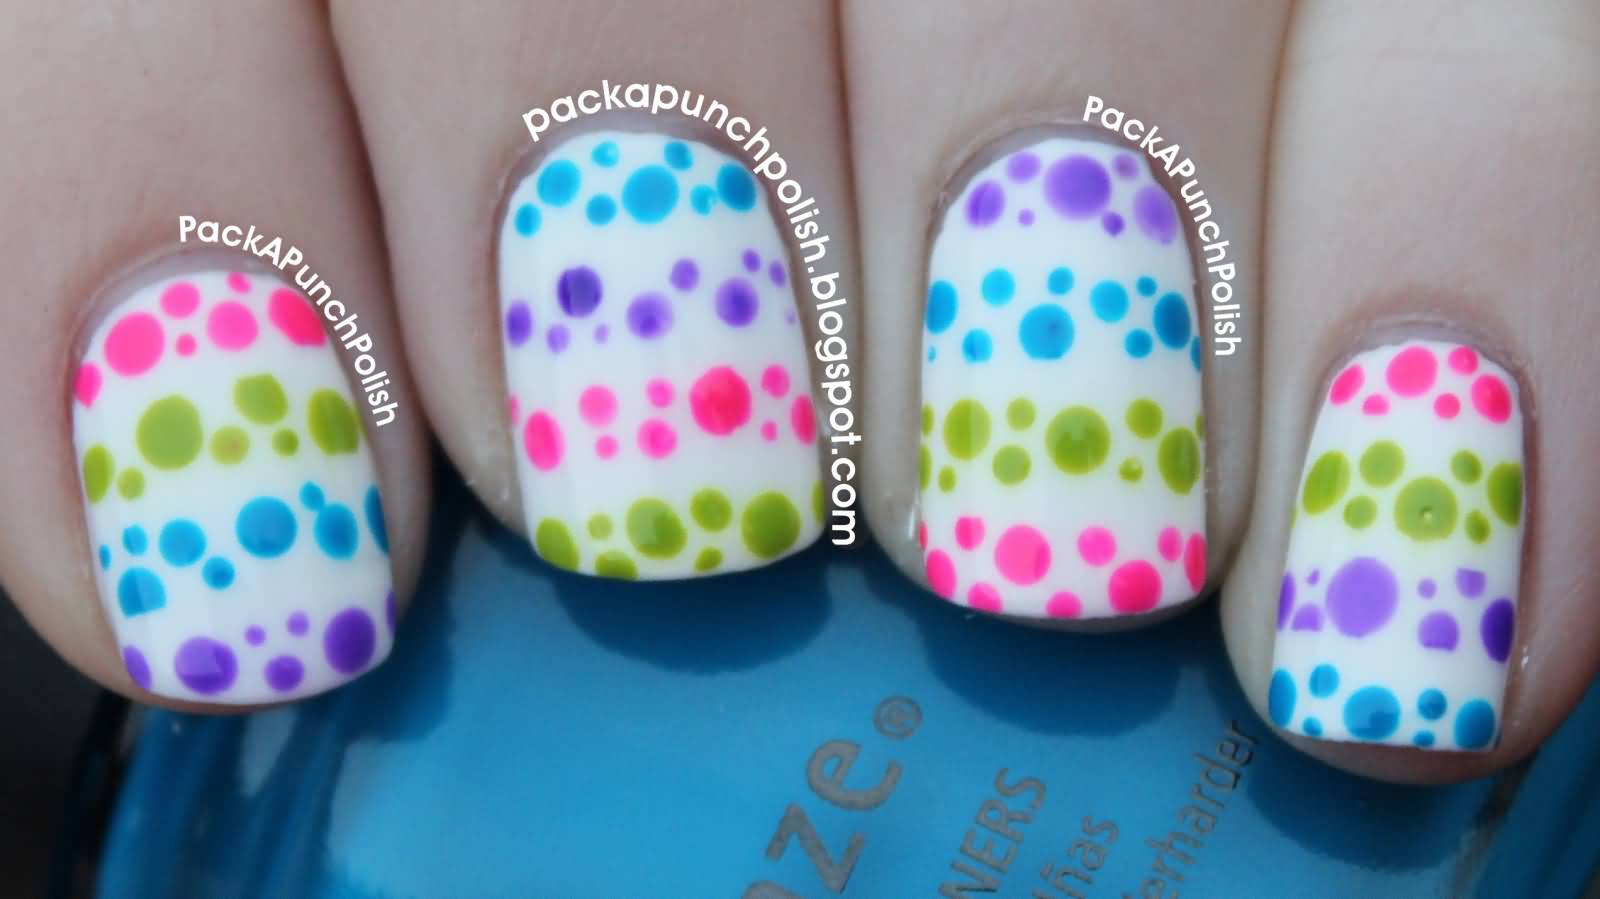 Multicolored Polka Dots Nail Art On Whits Nails